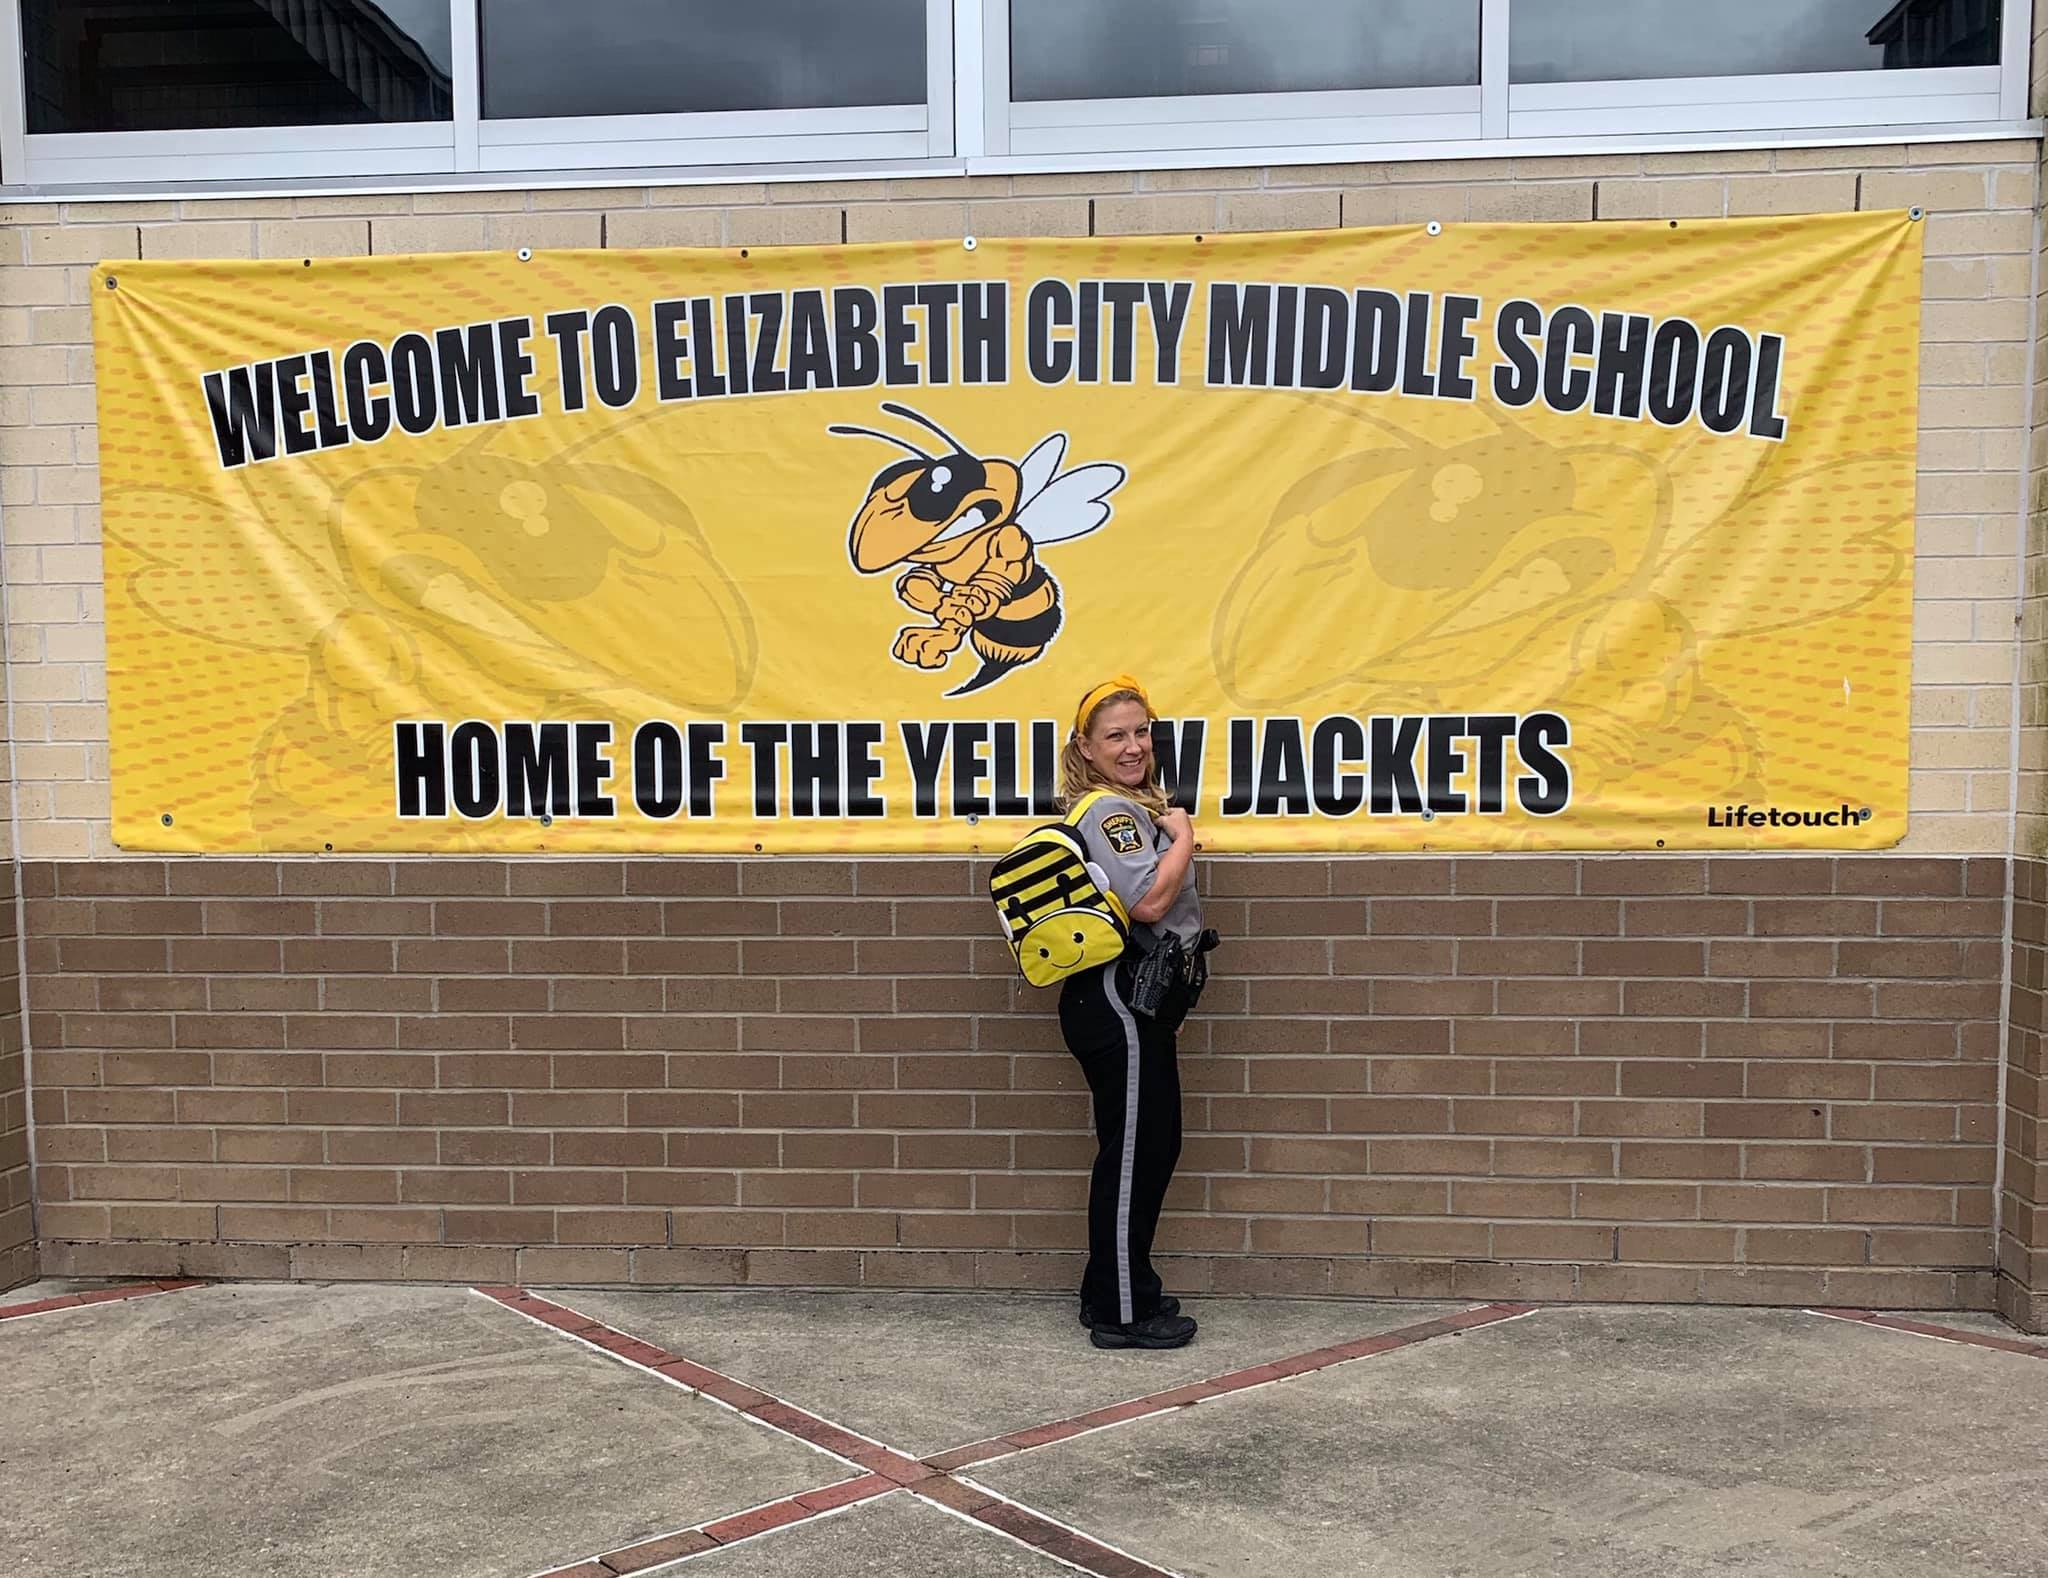 Tonie Goldsmith at Elizabeth City Middle School wearing backpack in front of yellow jacket banner